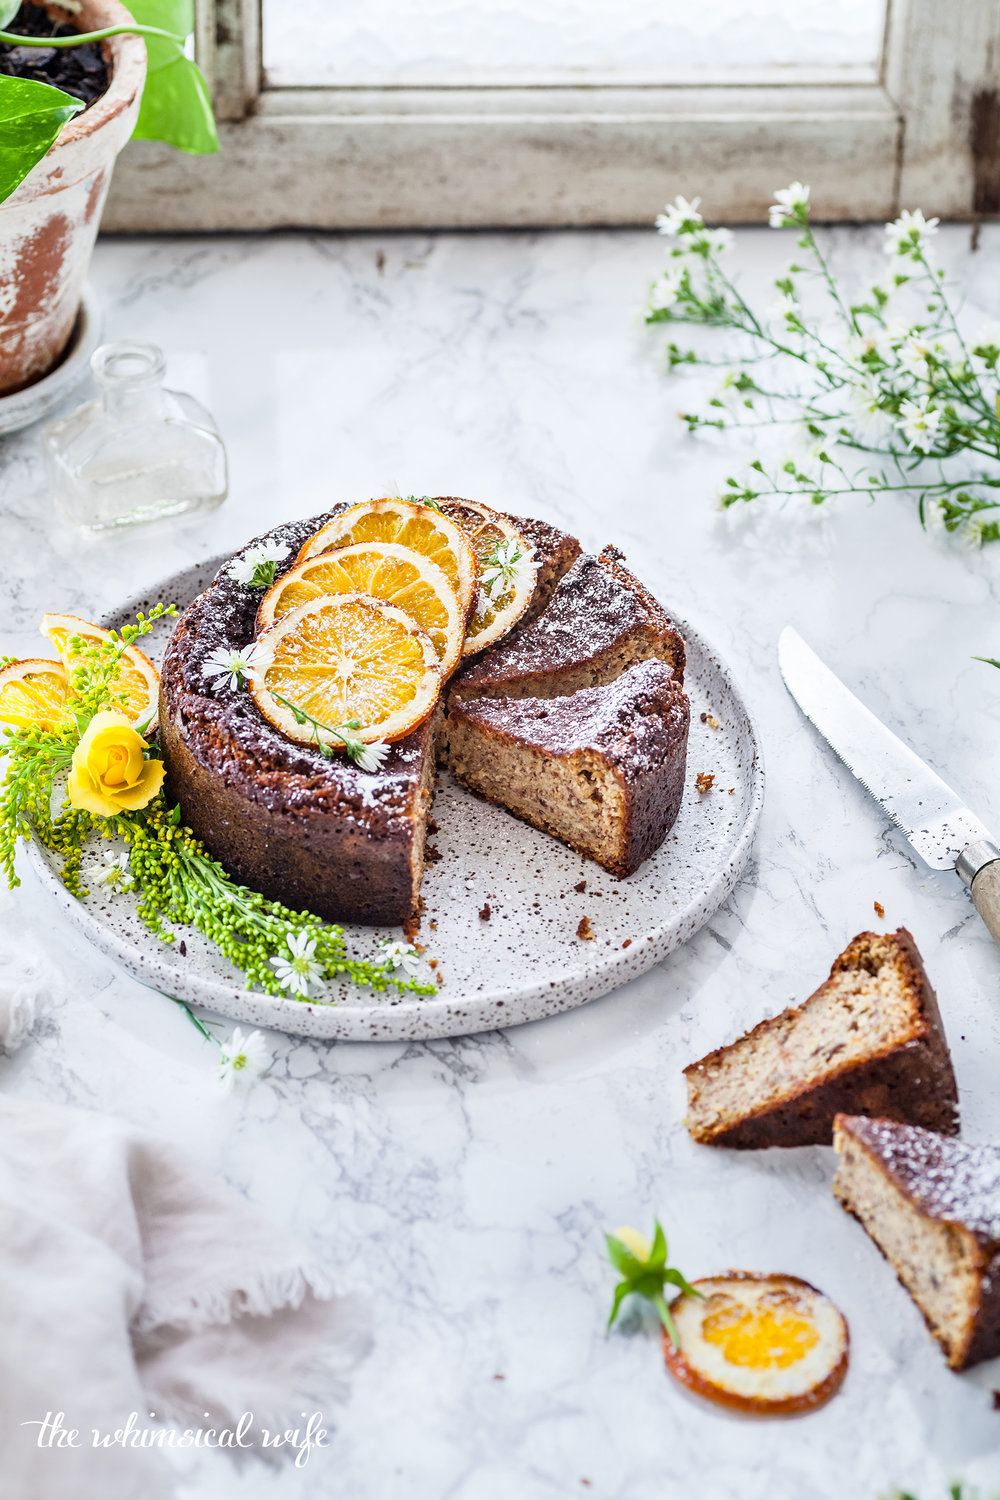 30 Cakes In 30 Days | 5. Orange & Almond Cake {Vegan, Gluten & Dairy Free} | The Whimsical Wife